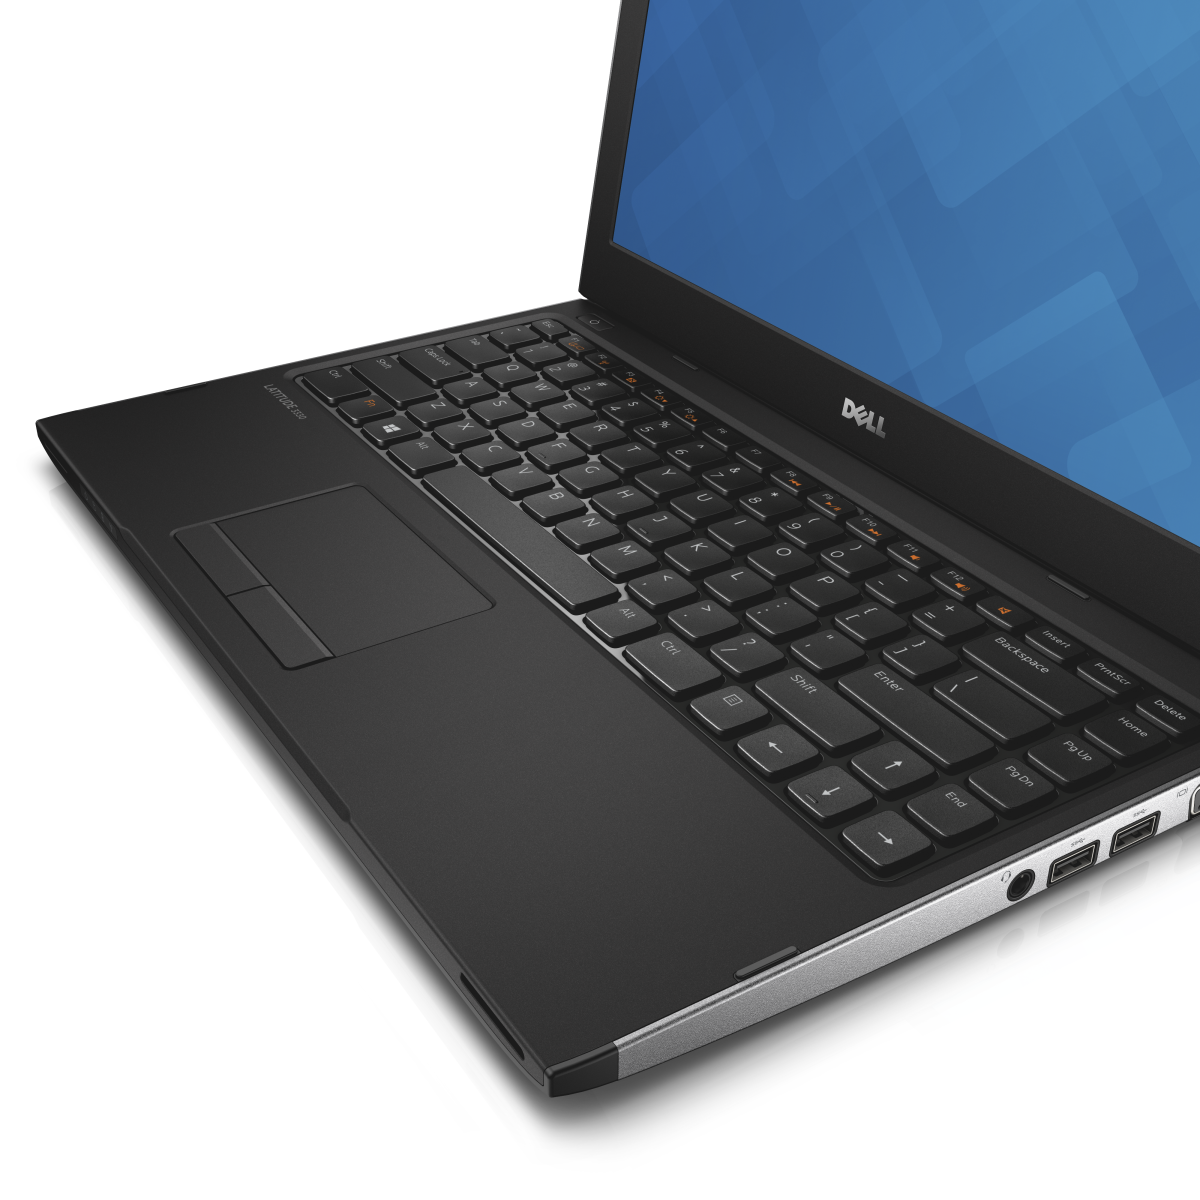 Most Expensive Dell Laptop – Quotes of the Day